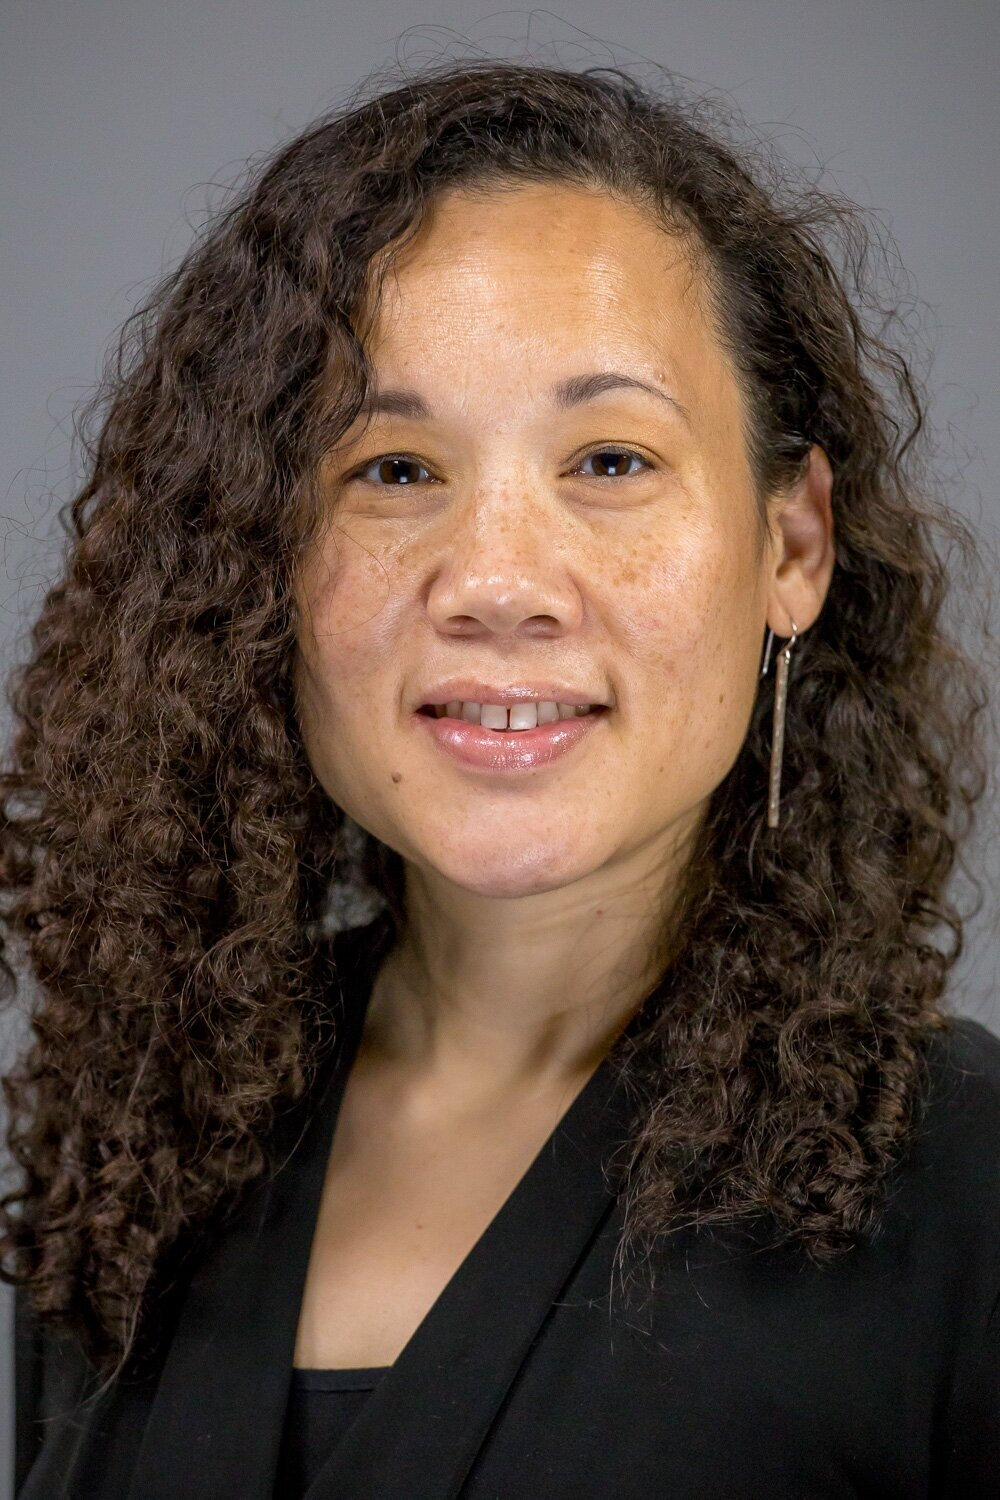 WILLOW S. LUNG-AMAM, PH.D. - Associate ProfessorUrban Studies and Planning ProgramUniversity of Maryland, College Park3835 Campus Drive, #1227College Park, Maryland 20742(301) 405 6289lungamam@umd.eduhttp://www.arch.umd.edu/ursp/faculty/willow-lung-amam